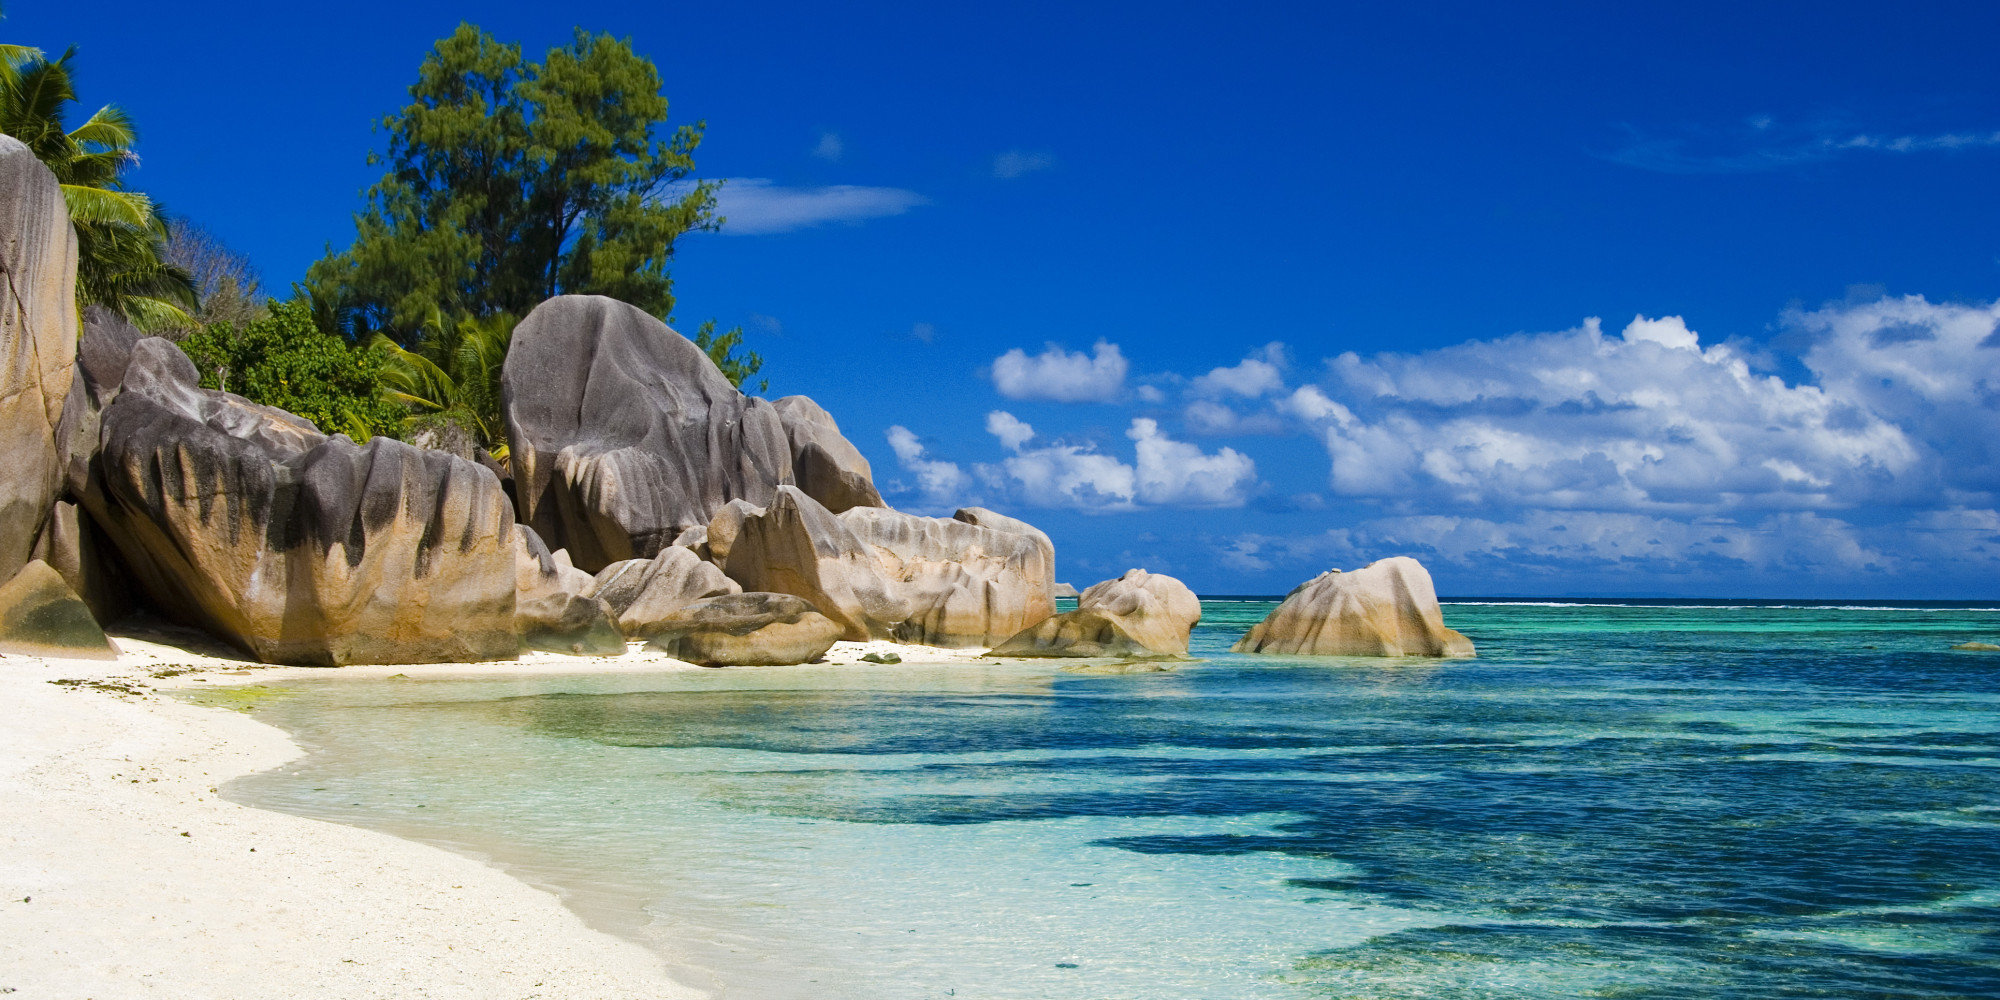 la digue island is heaven on earth or at least heaven